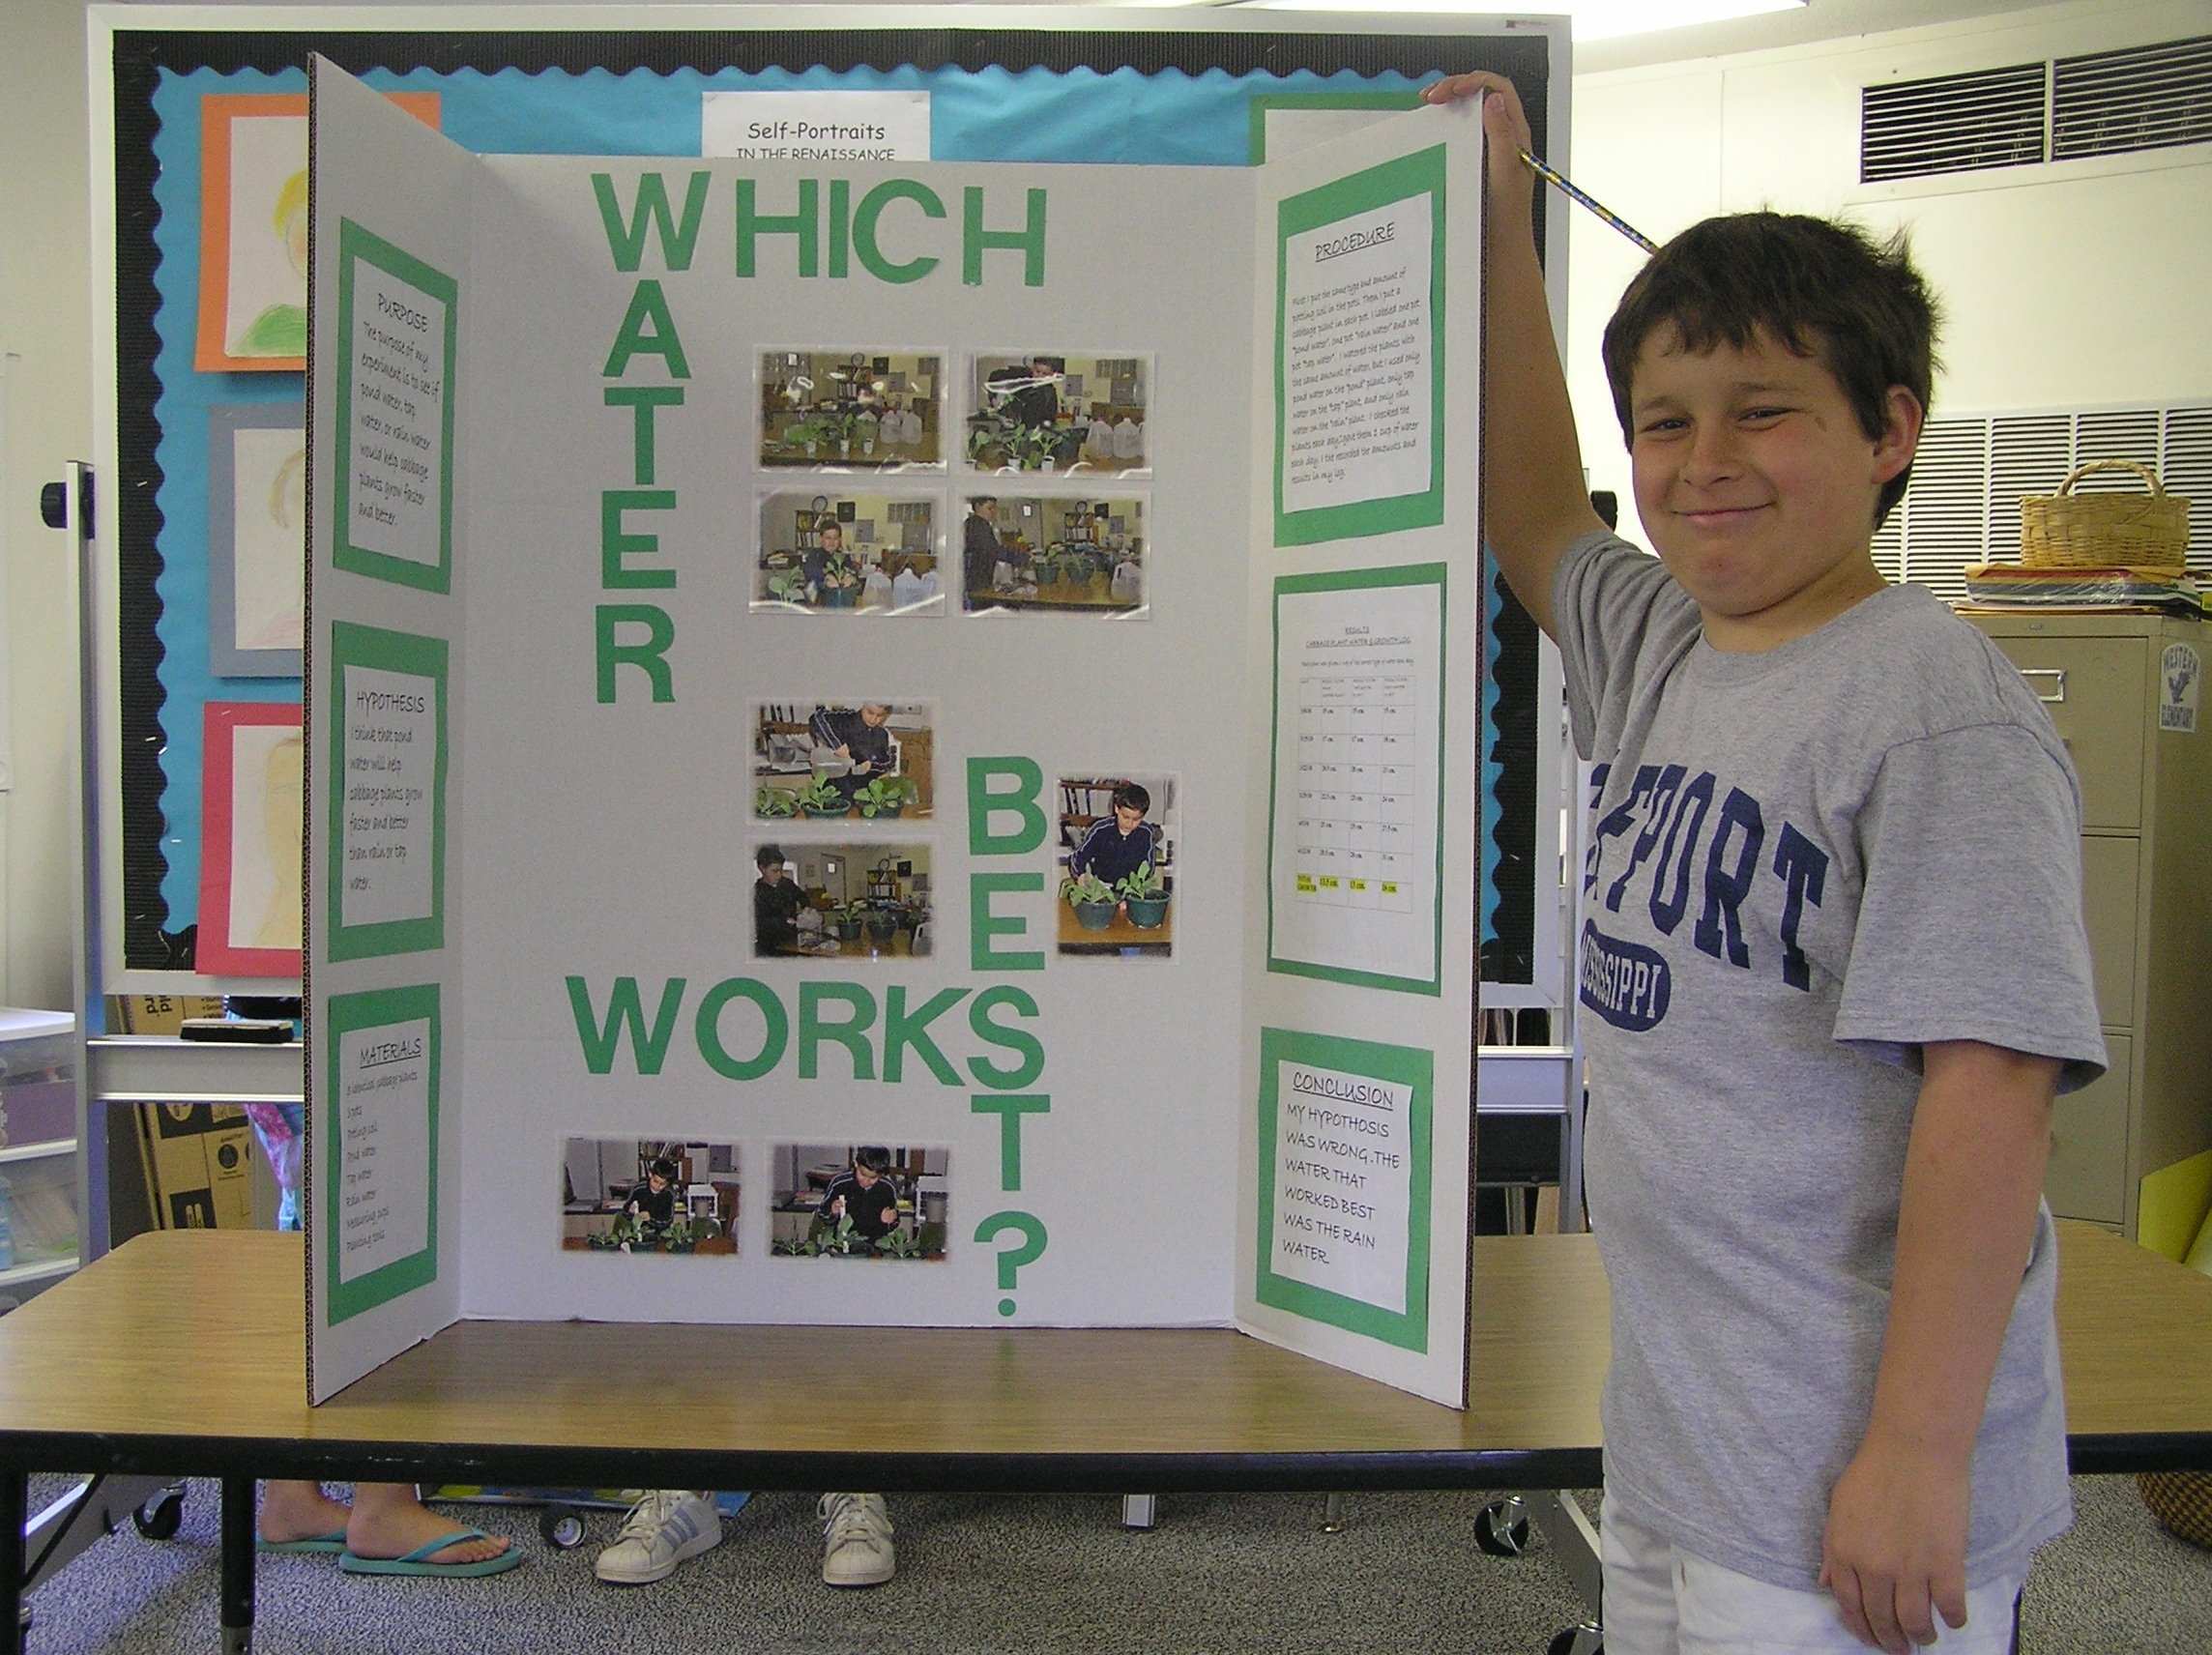 10 Attractive Science Fair Ideas For 4Th Graders 2010 regional science fair winne ideas collection 4th grade science 2 2020